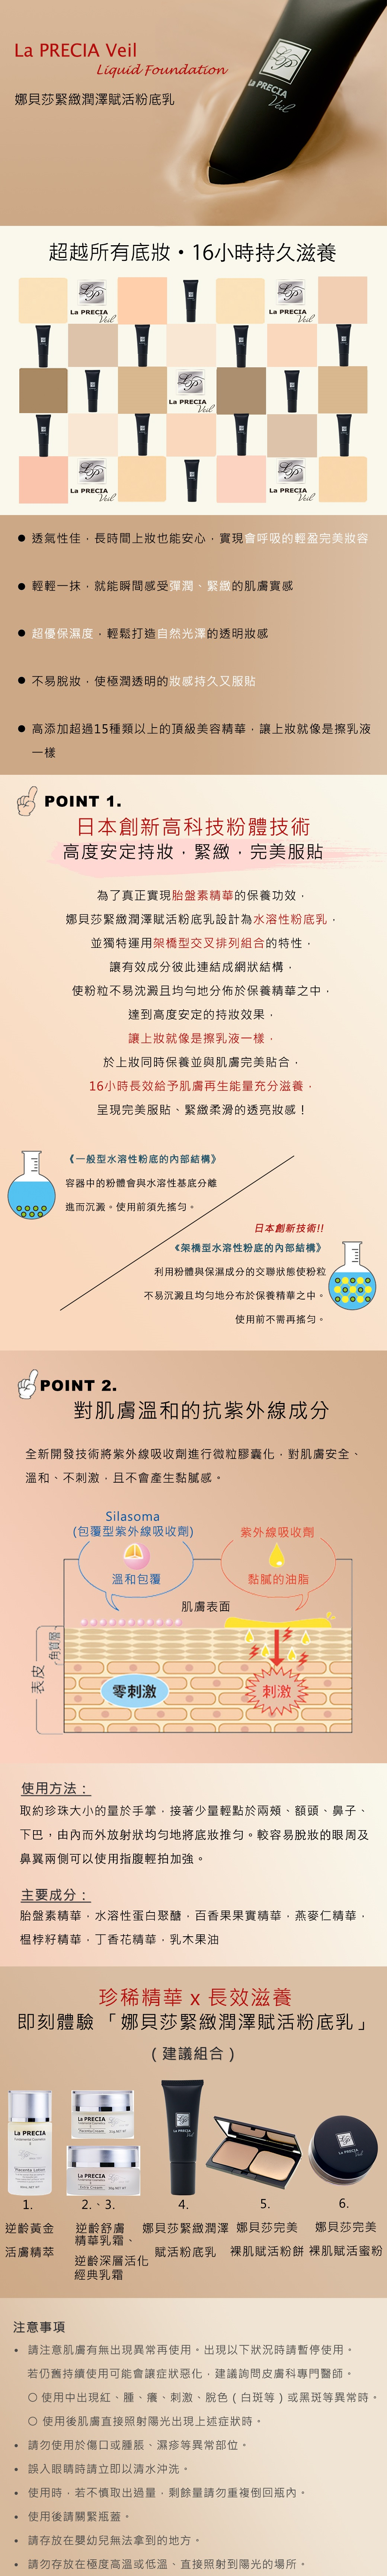 Liquid Foundation info 0328